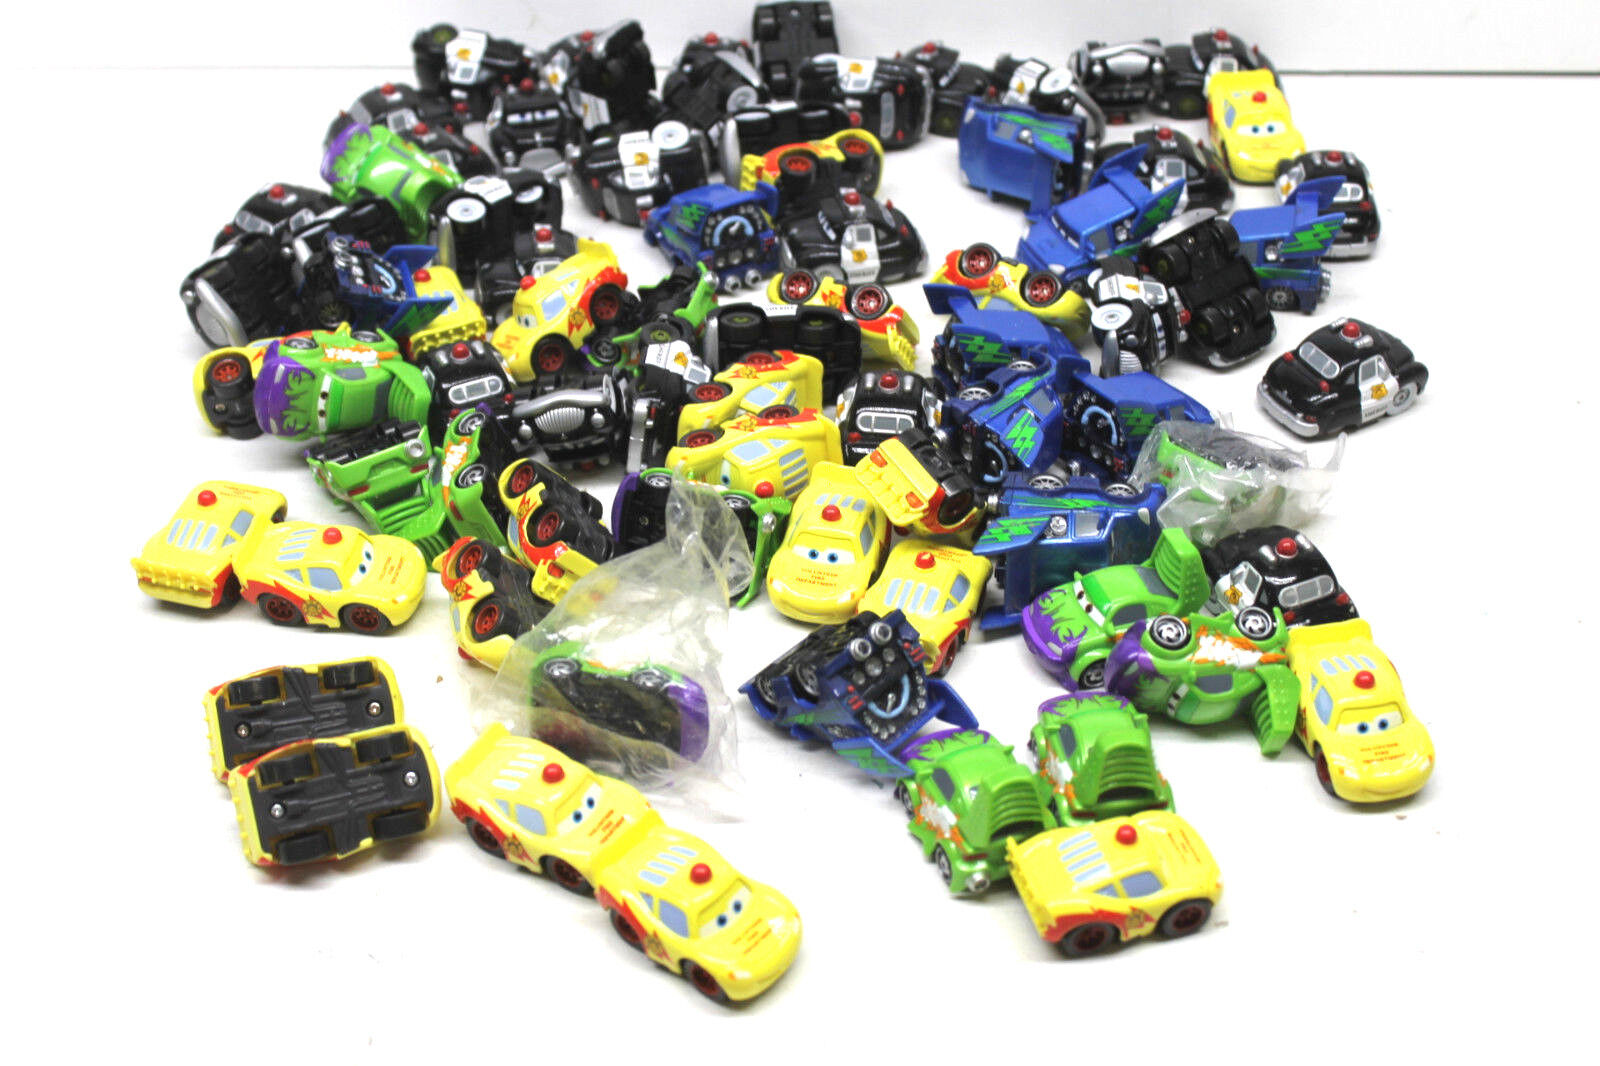 80 pc Pixar Cars the Movie Mercury Vehicles Sheriff+Volunteer Fire Department+++